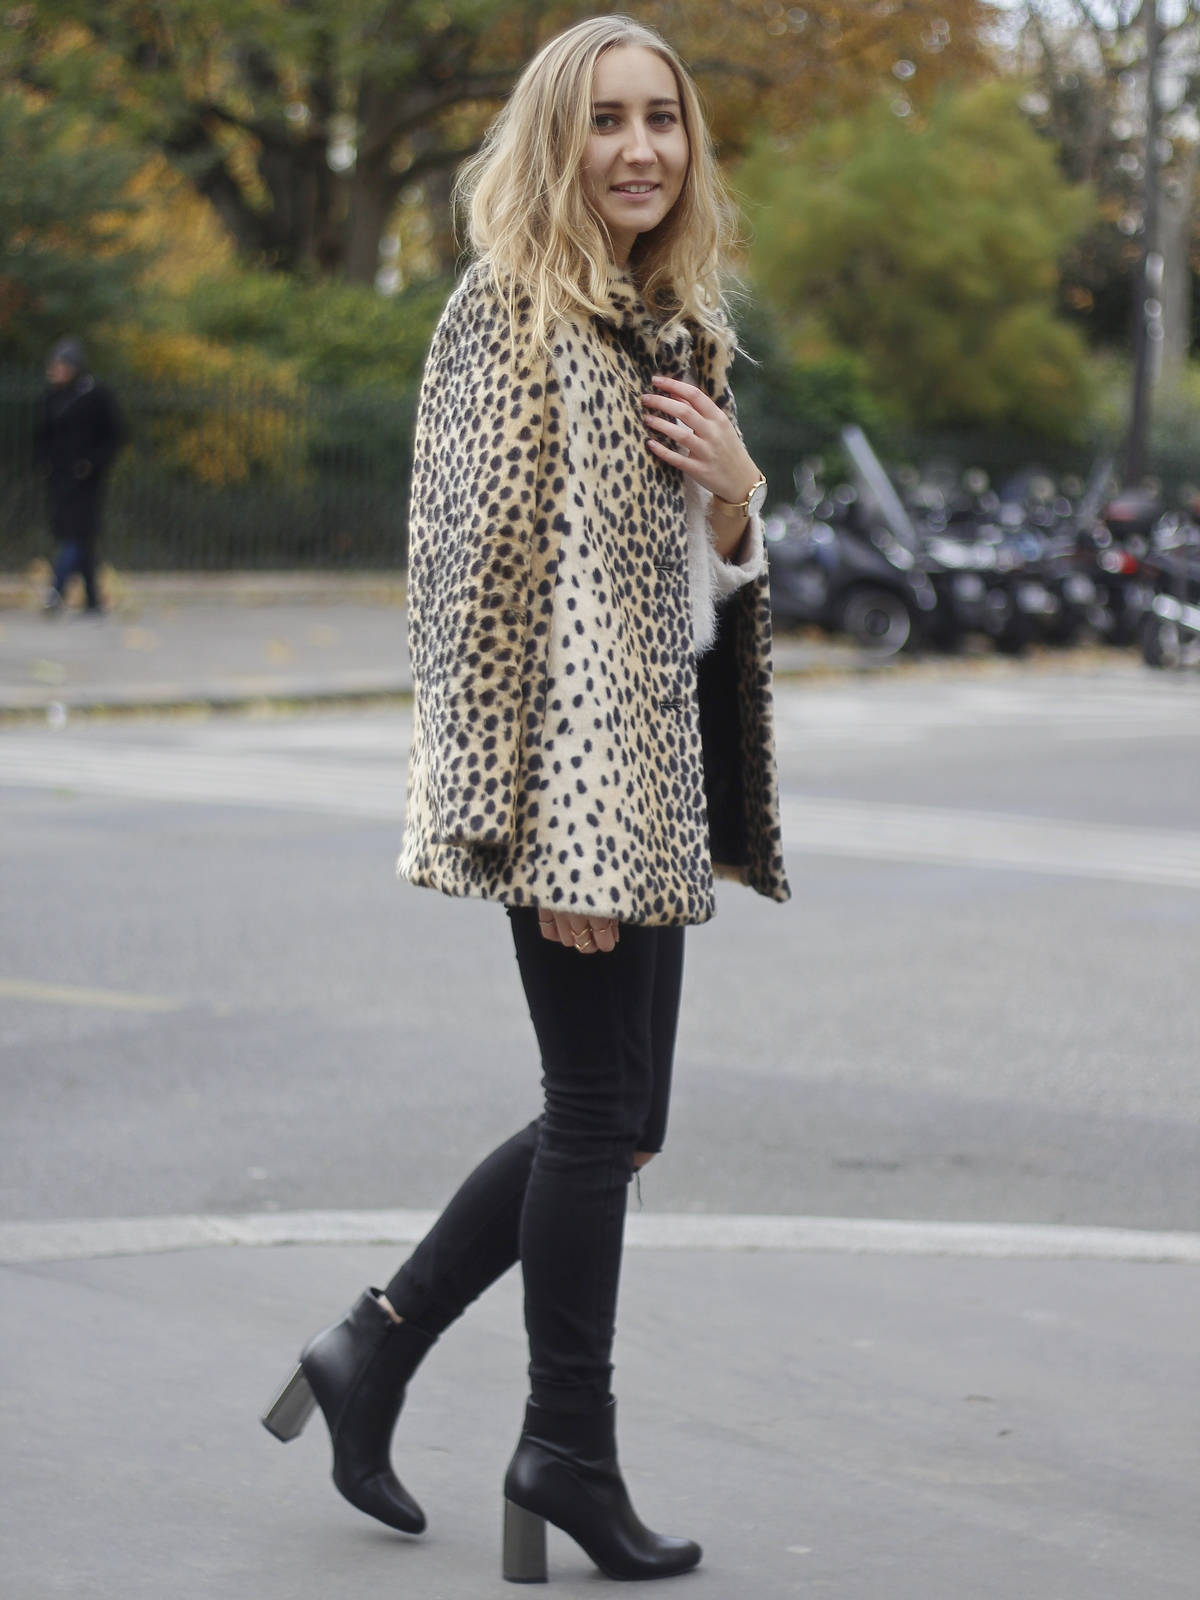 The Blondie World X Du style, Madame ! outfit - look - manteau léopard - leo coat